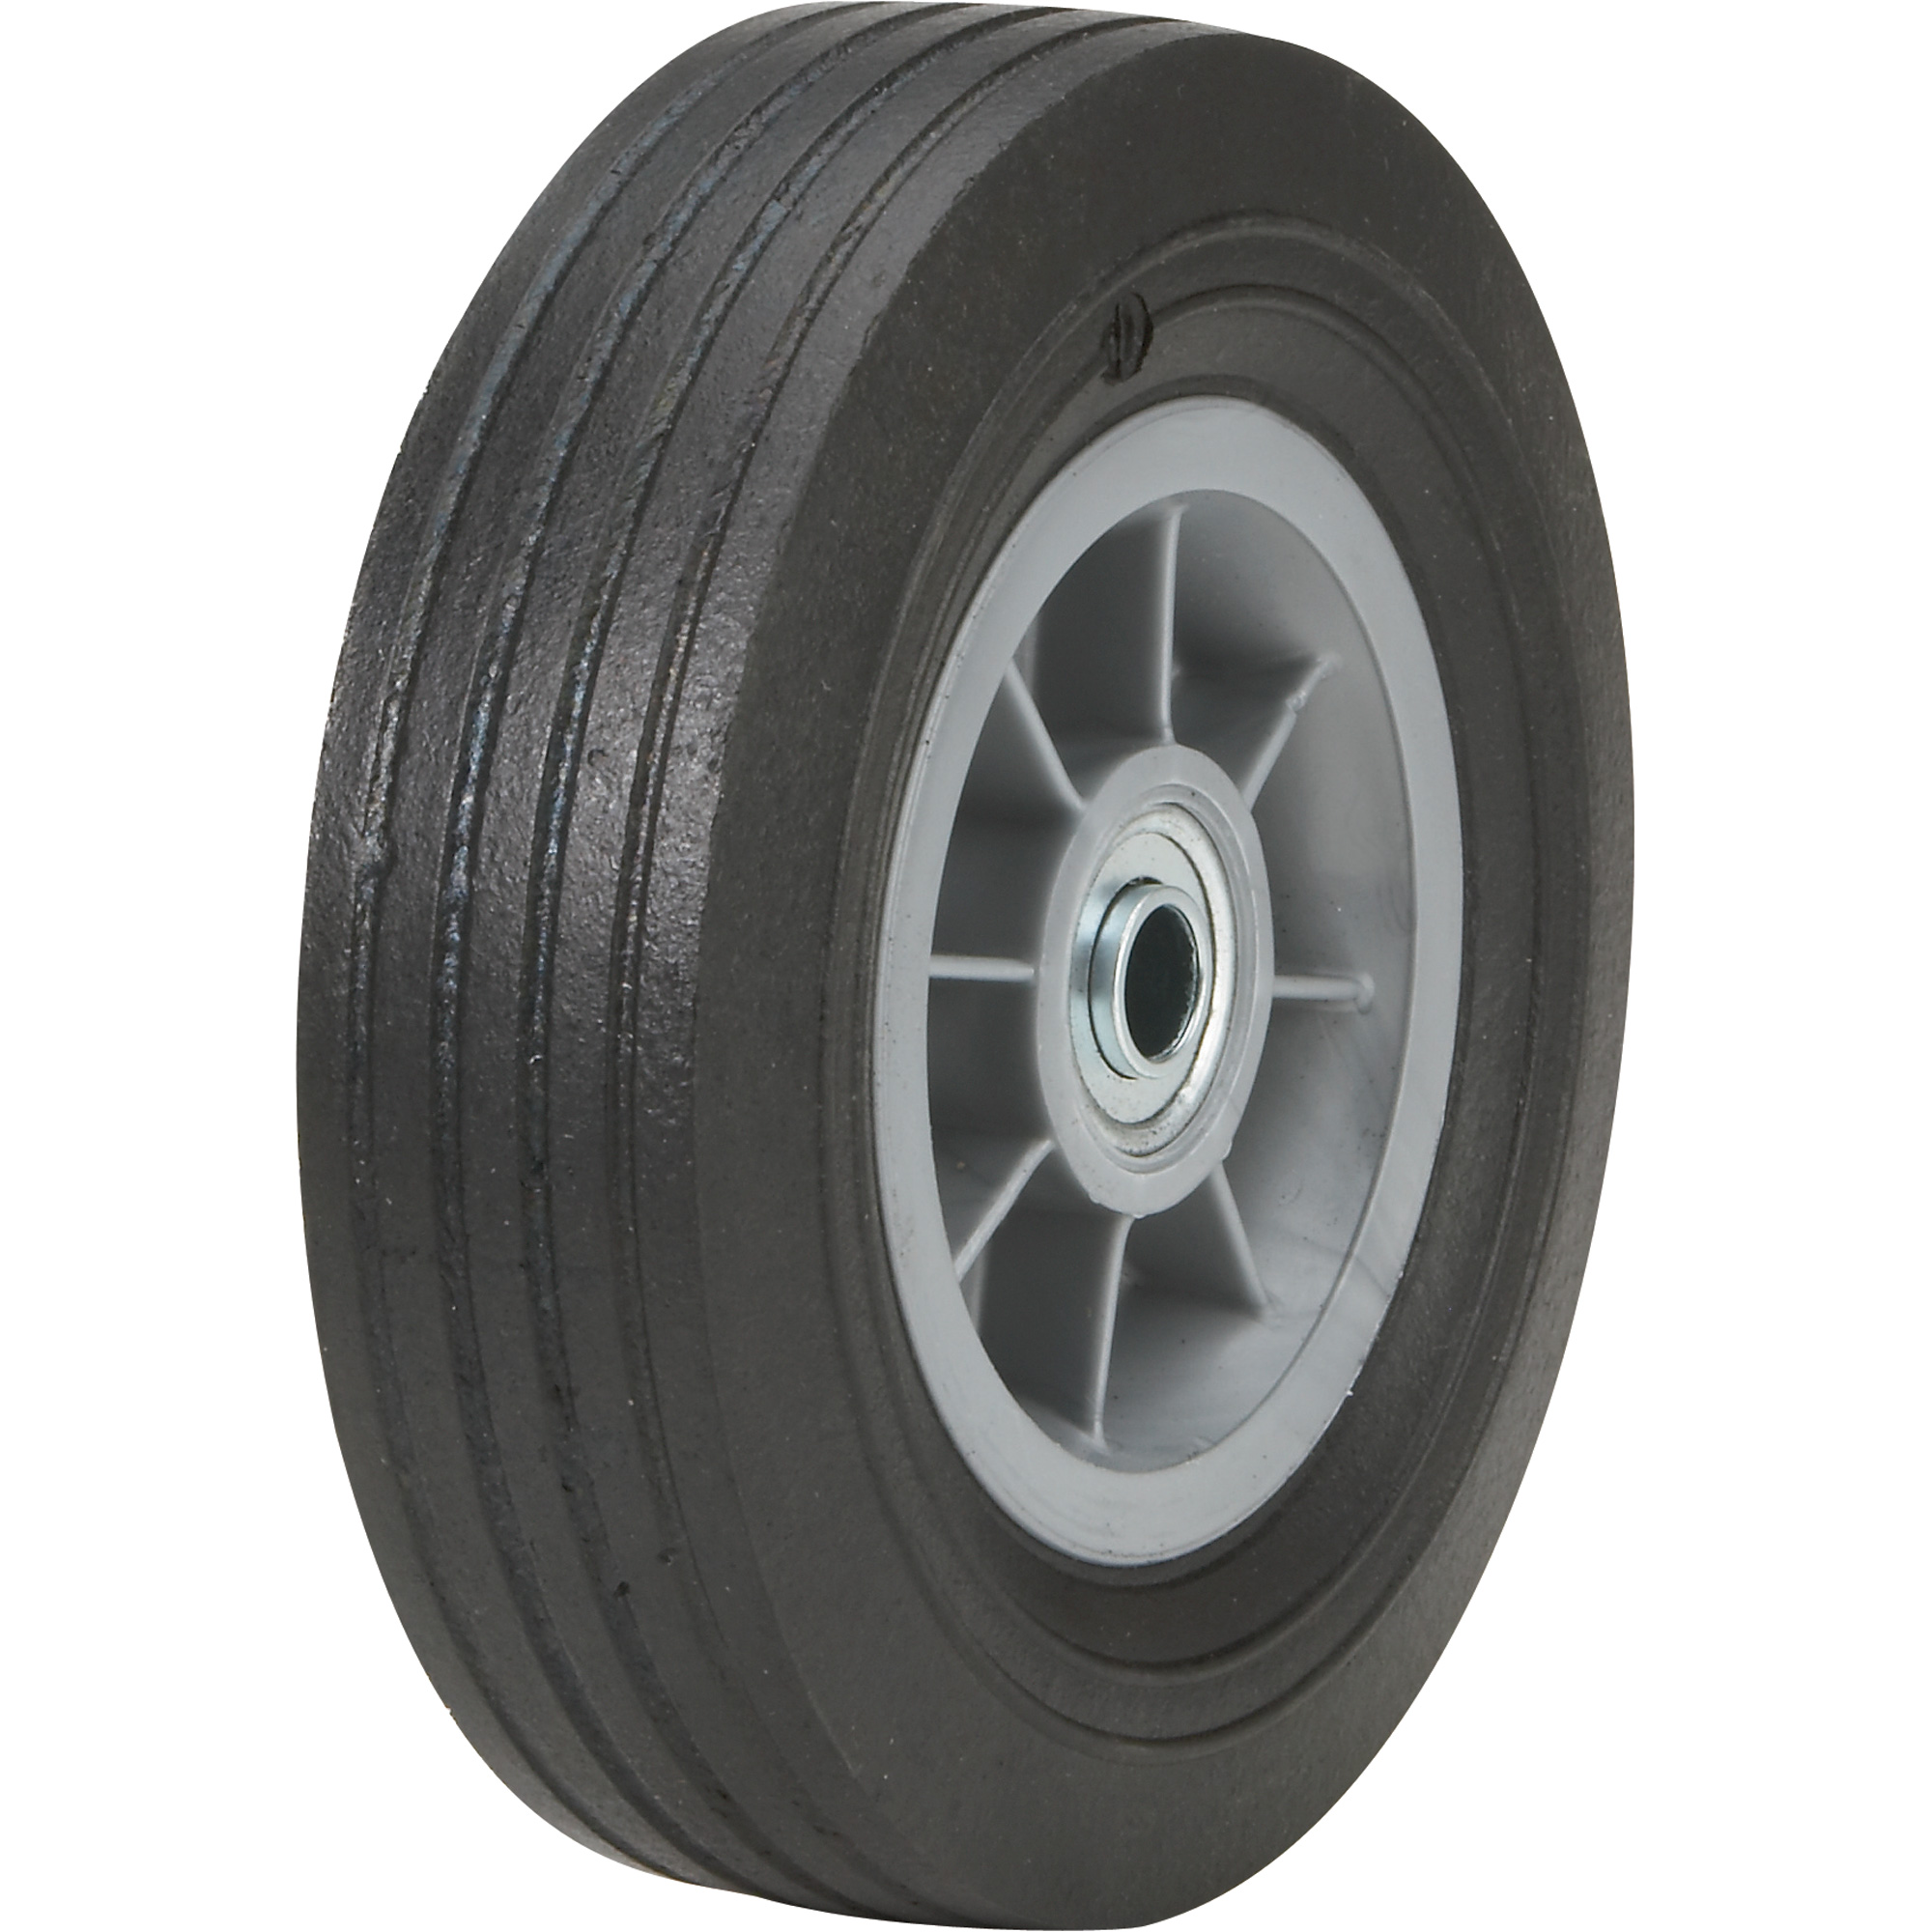 """Replacement Wheel Solid Rubber 8"""" 8SR"""